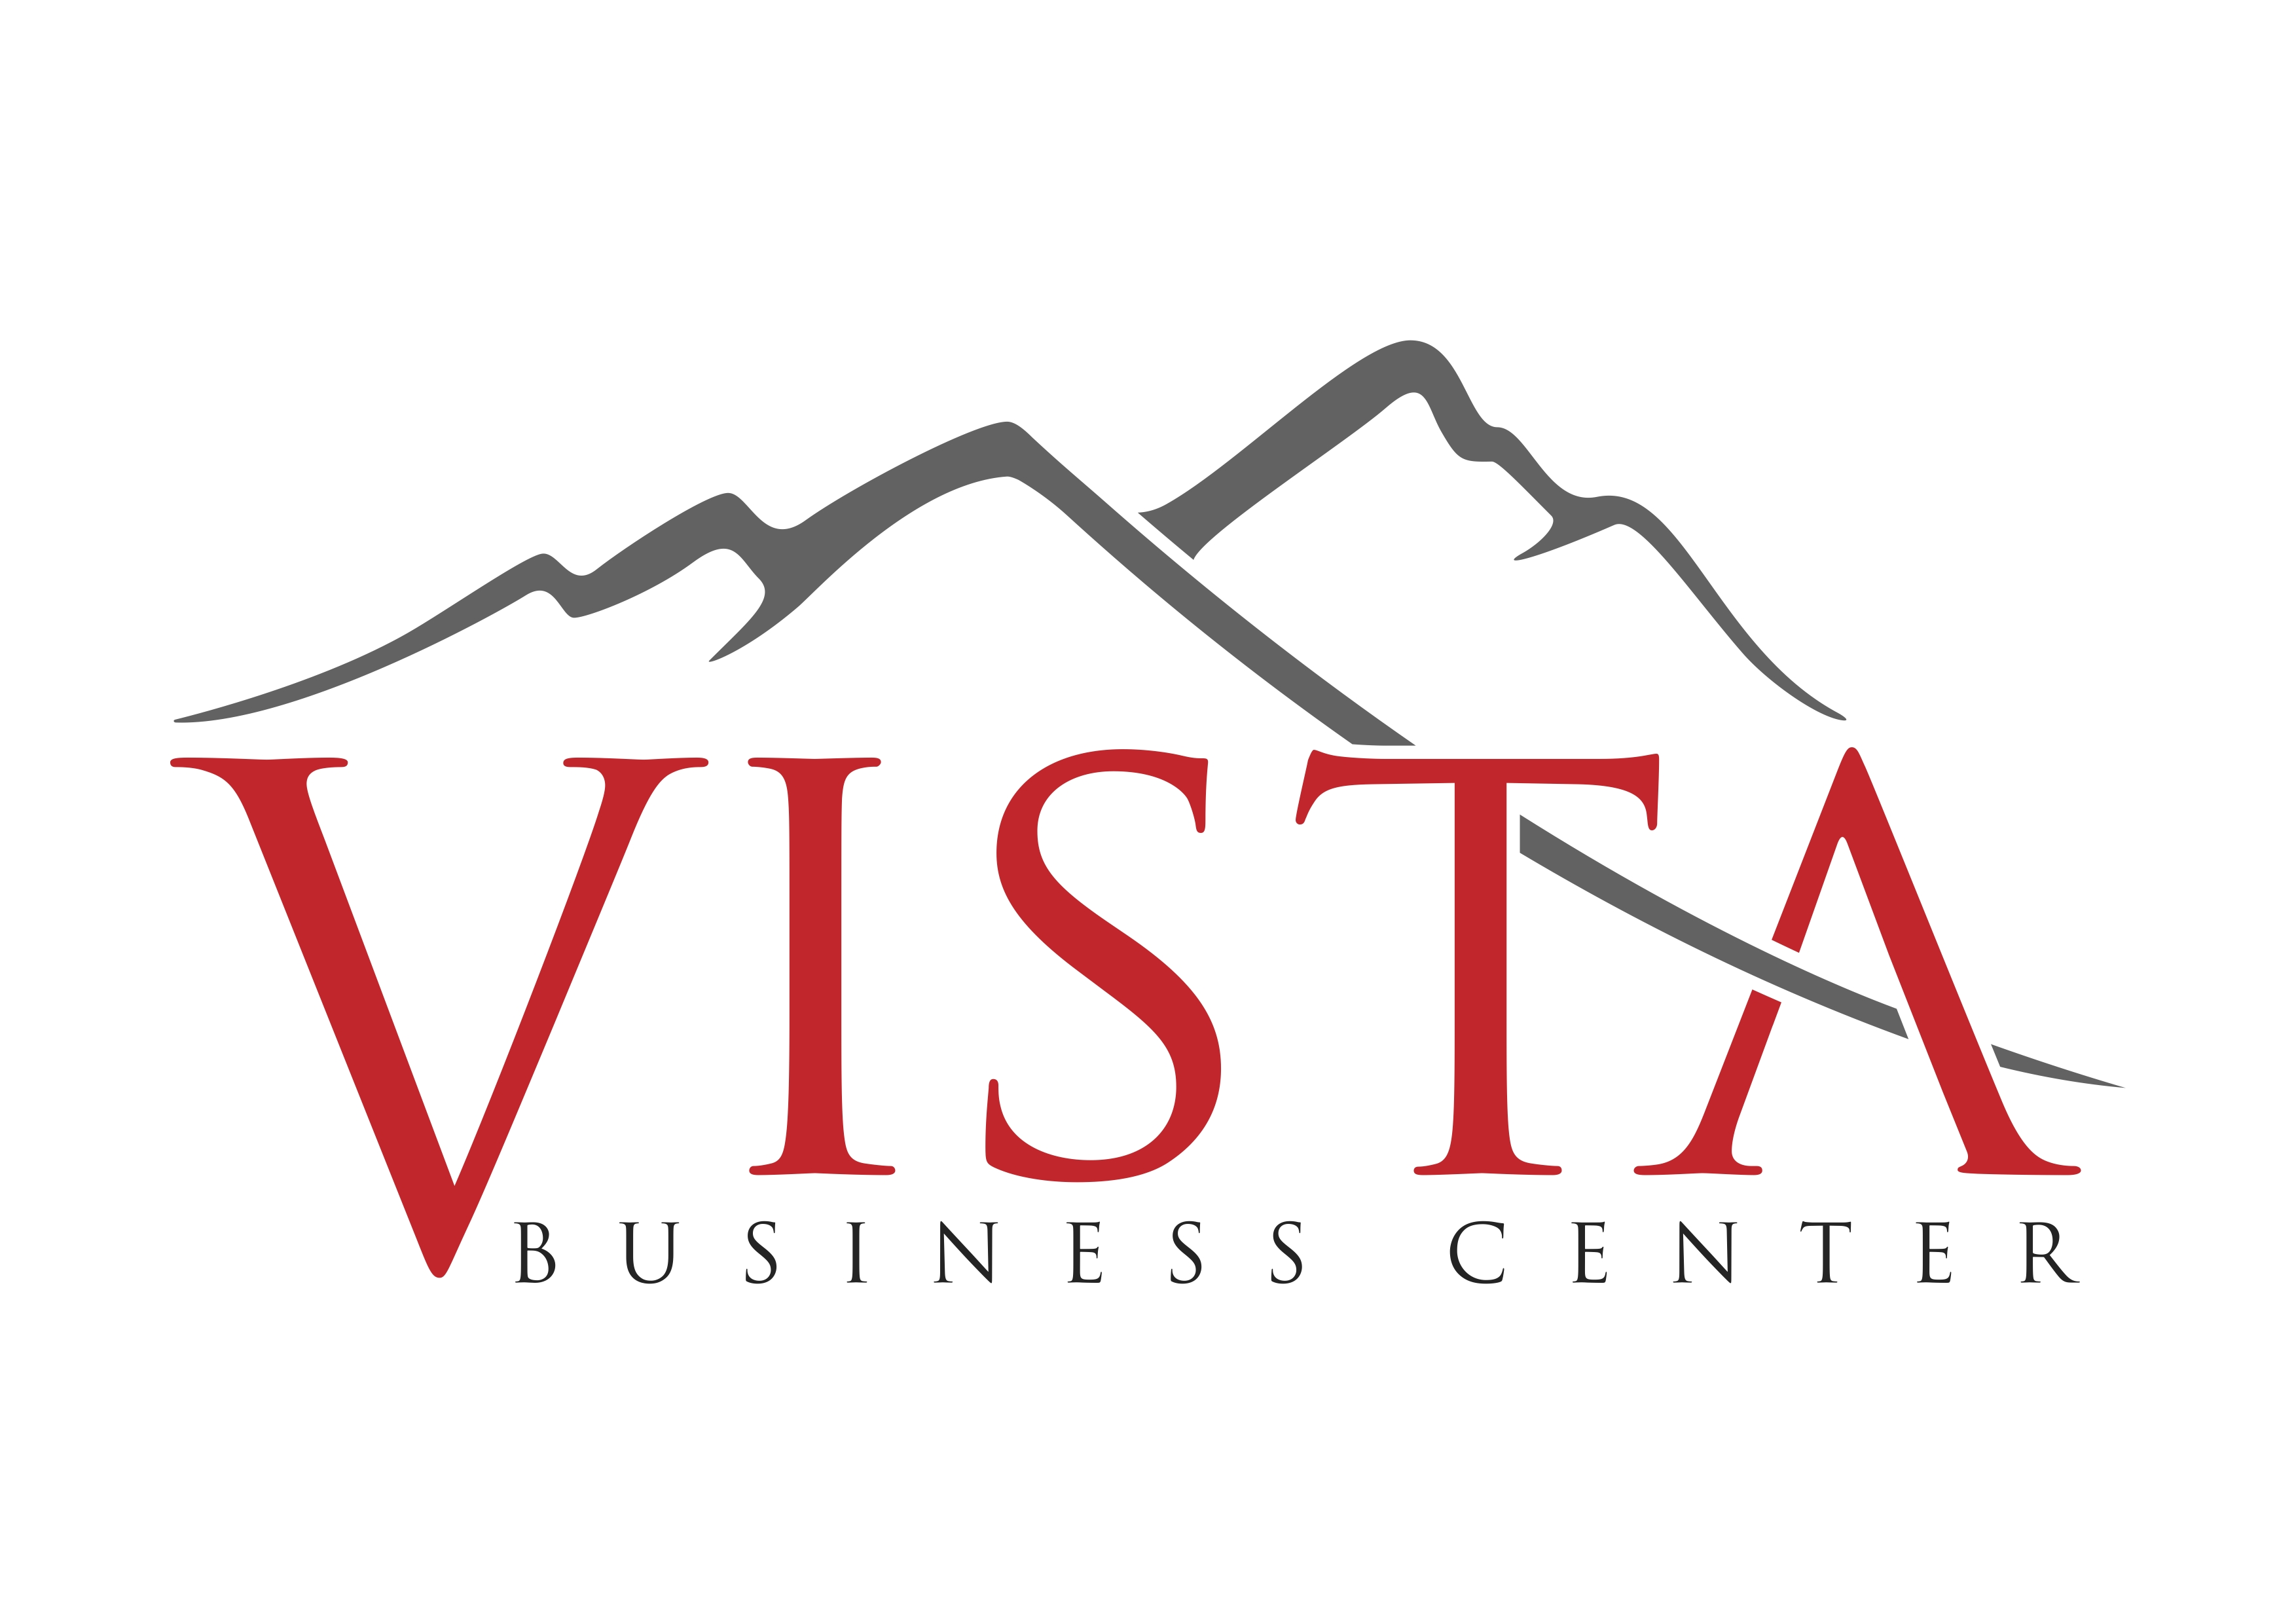 Vista Business Center